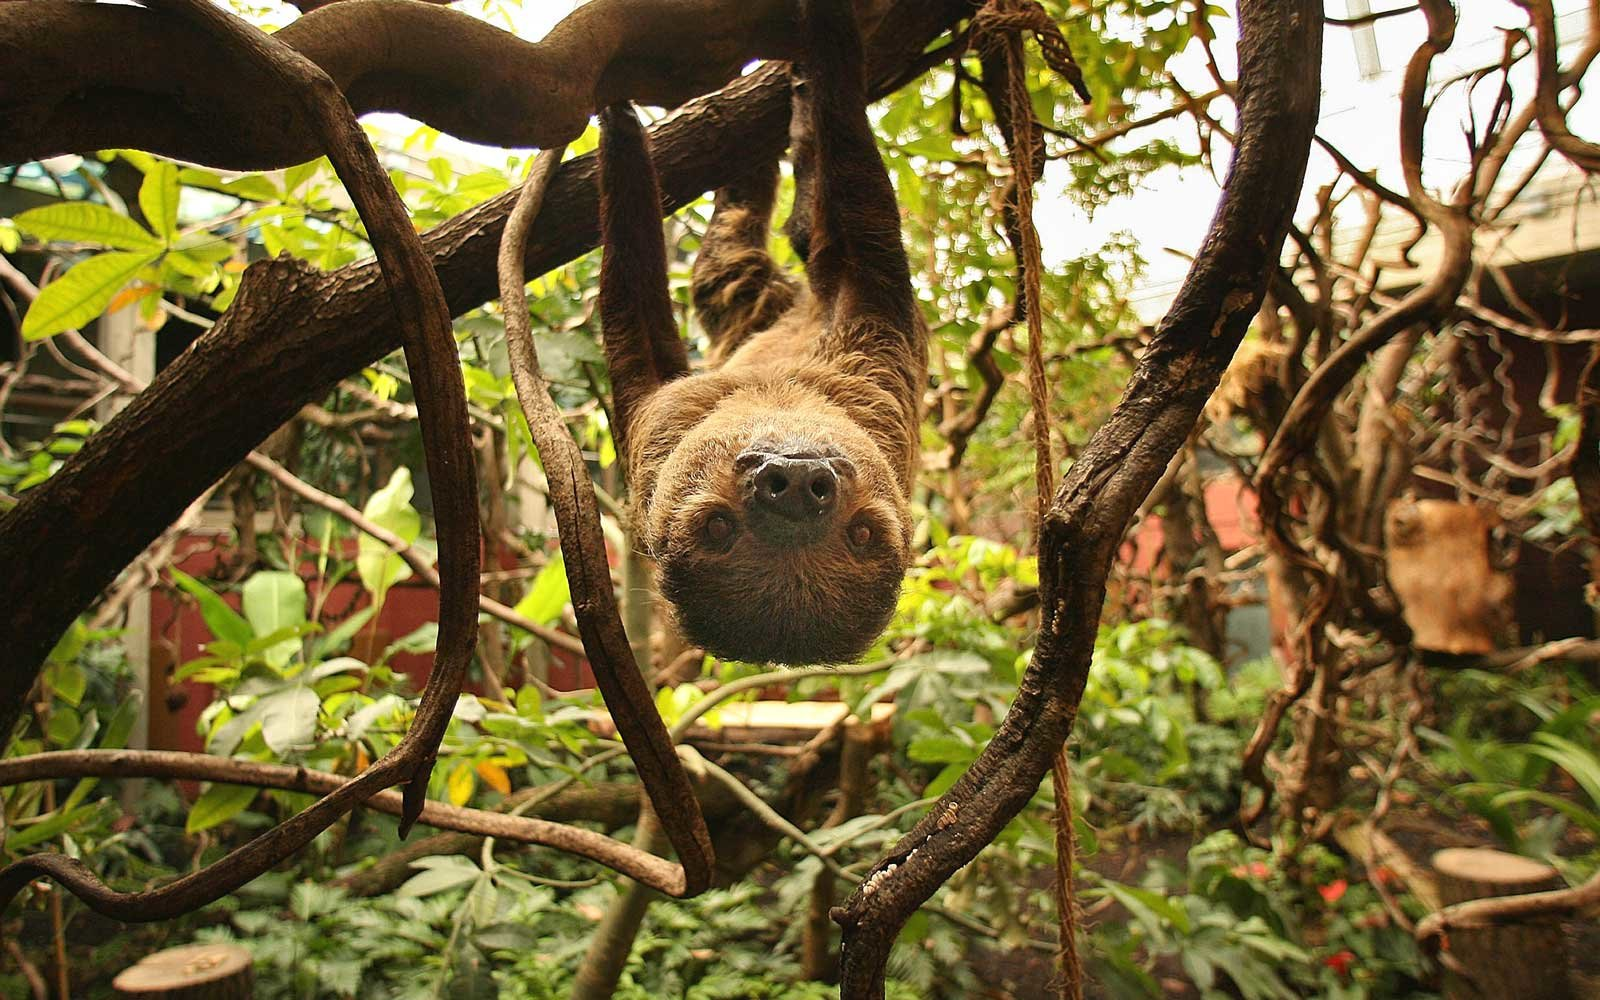 A sloth in a zoo in the UK